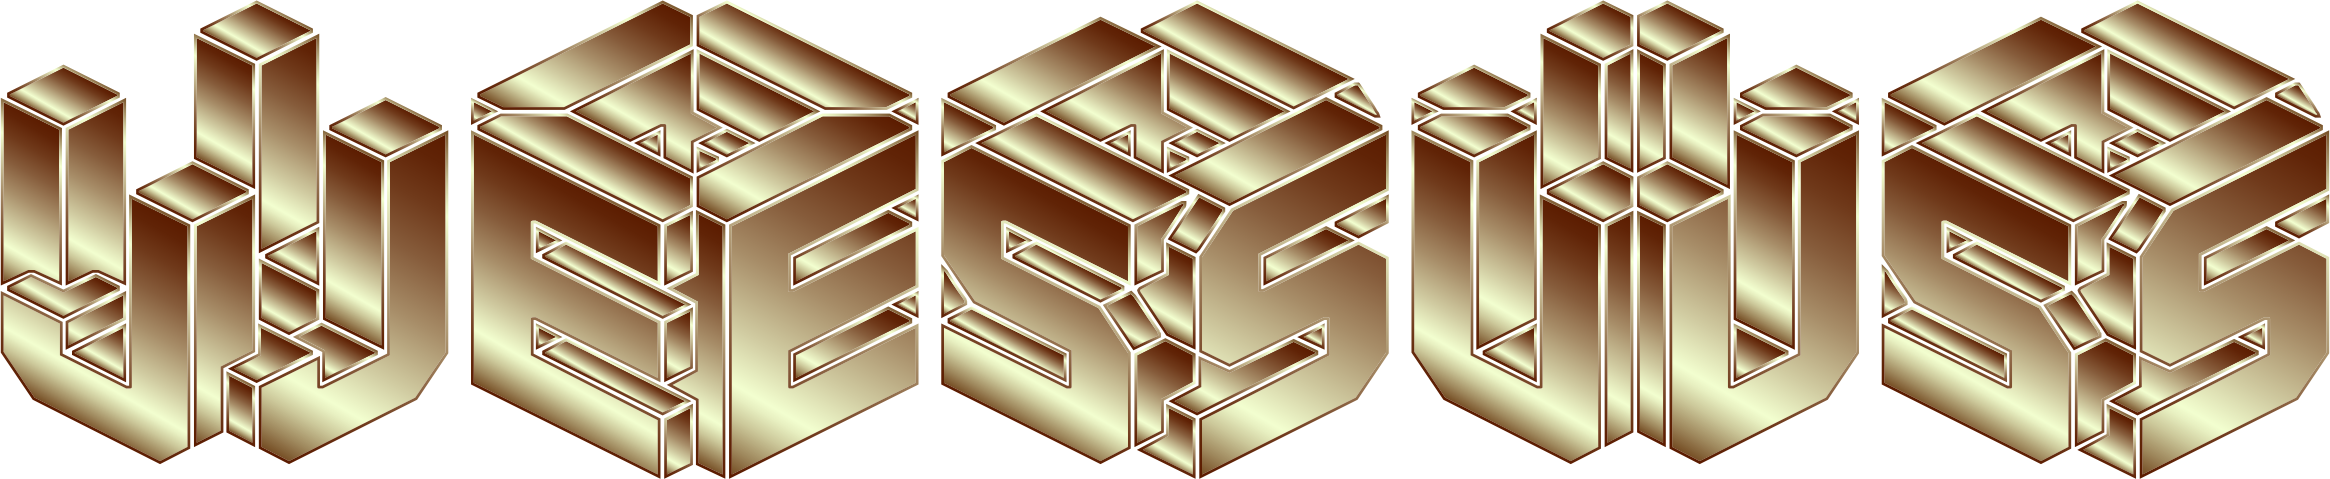 Gold 3D Isometric Jesus Typography 2 No Background by GDJ